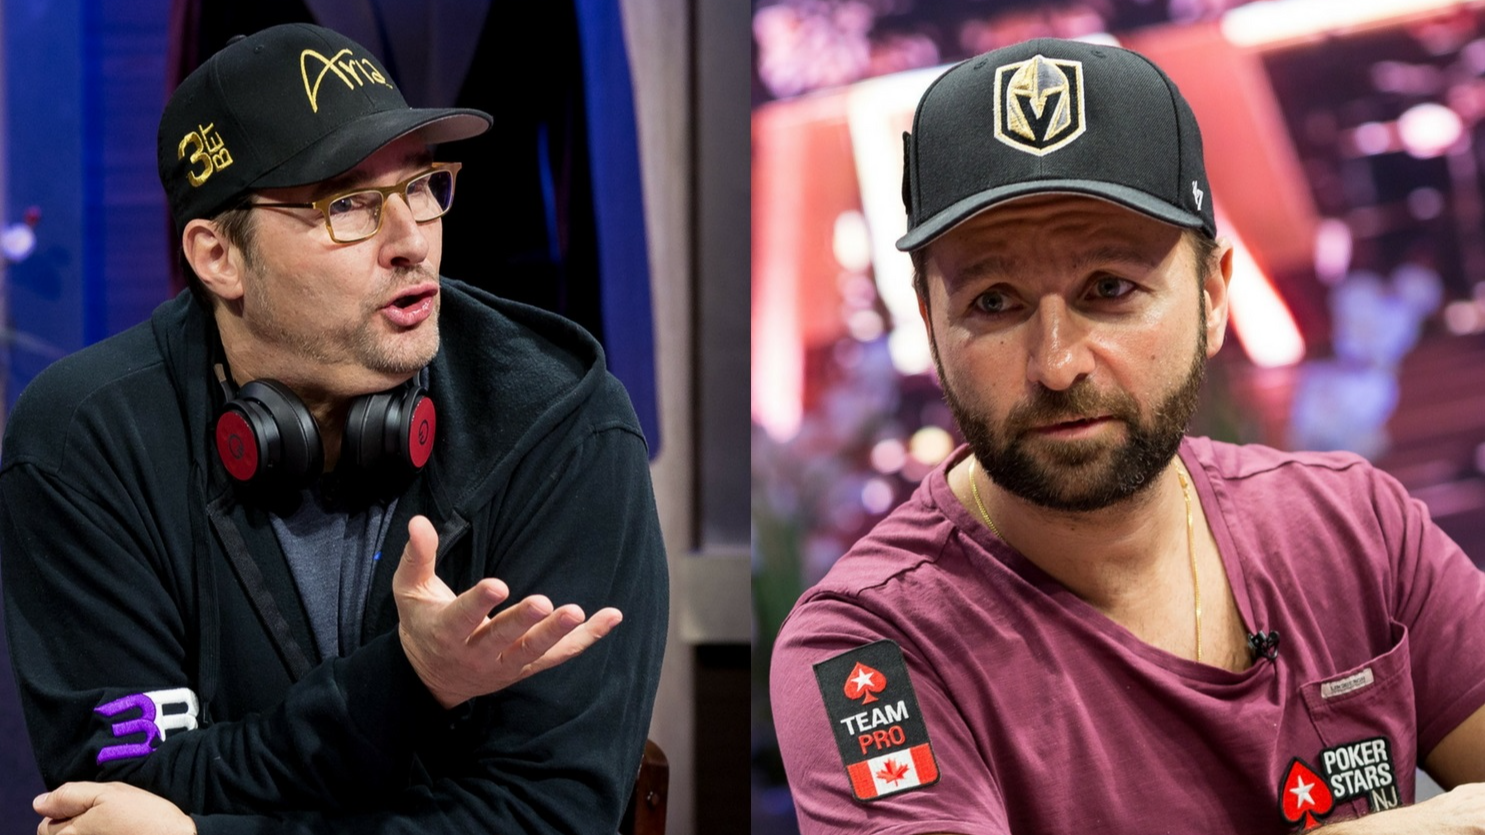 Daniel Negreanu and Phil Hellmuth Face-Off in High Stakes Duel